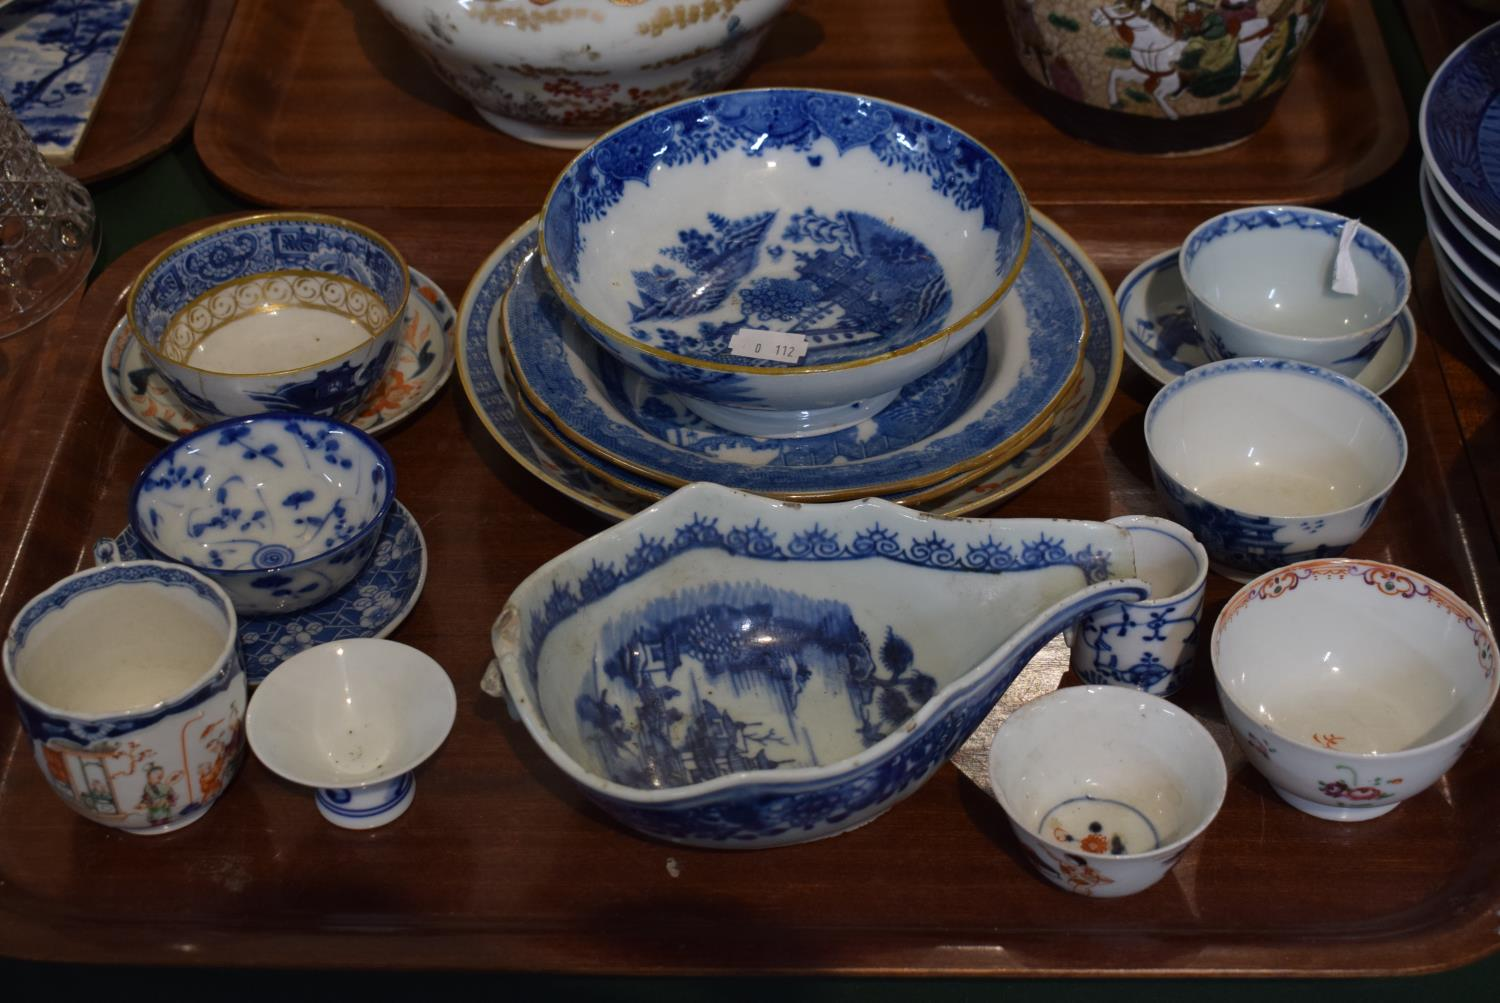 Lot 184 - A Tray of Blue and White Ceramics to Include Bowls, Chinese Tea Bowls and Saucers etc